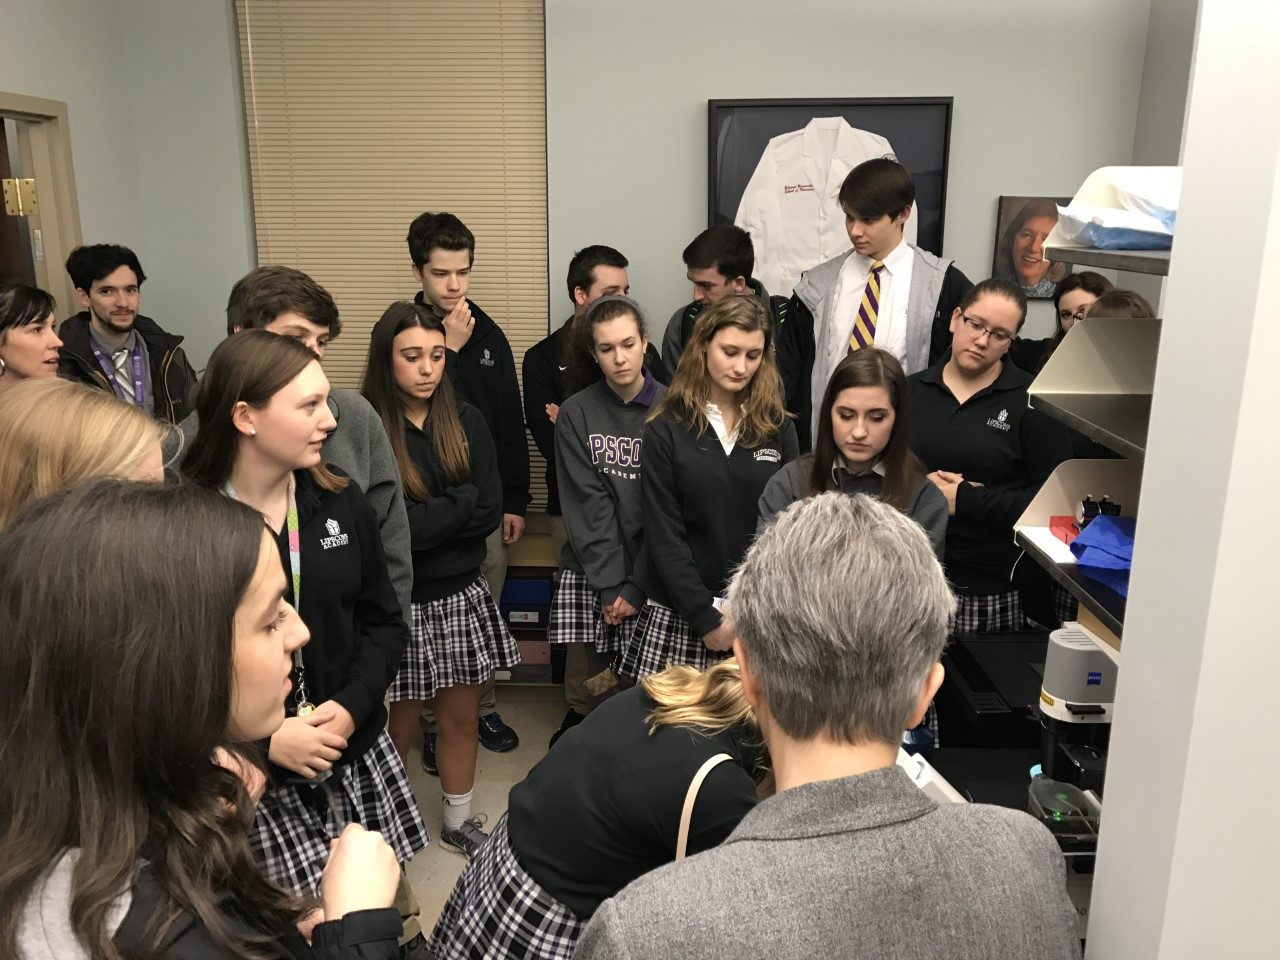 Libscomb Academy students touring Belmont's pharmacy lab